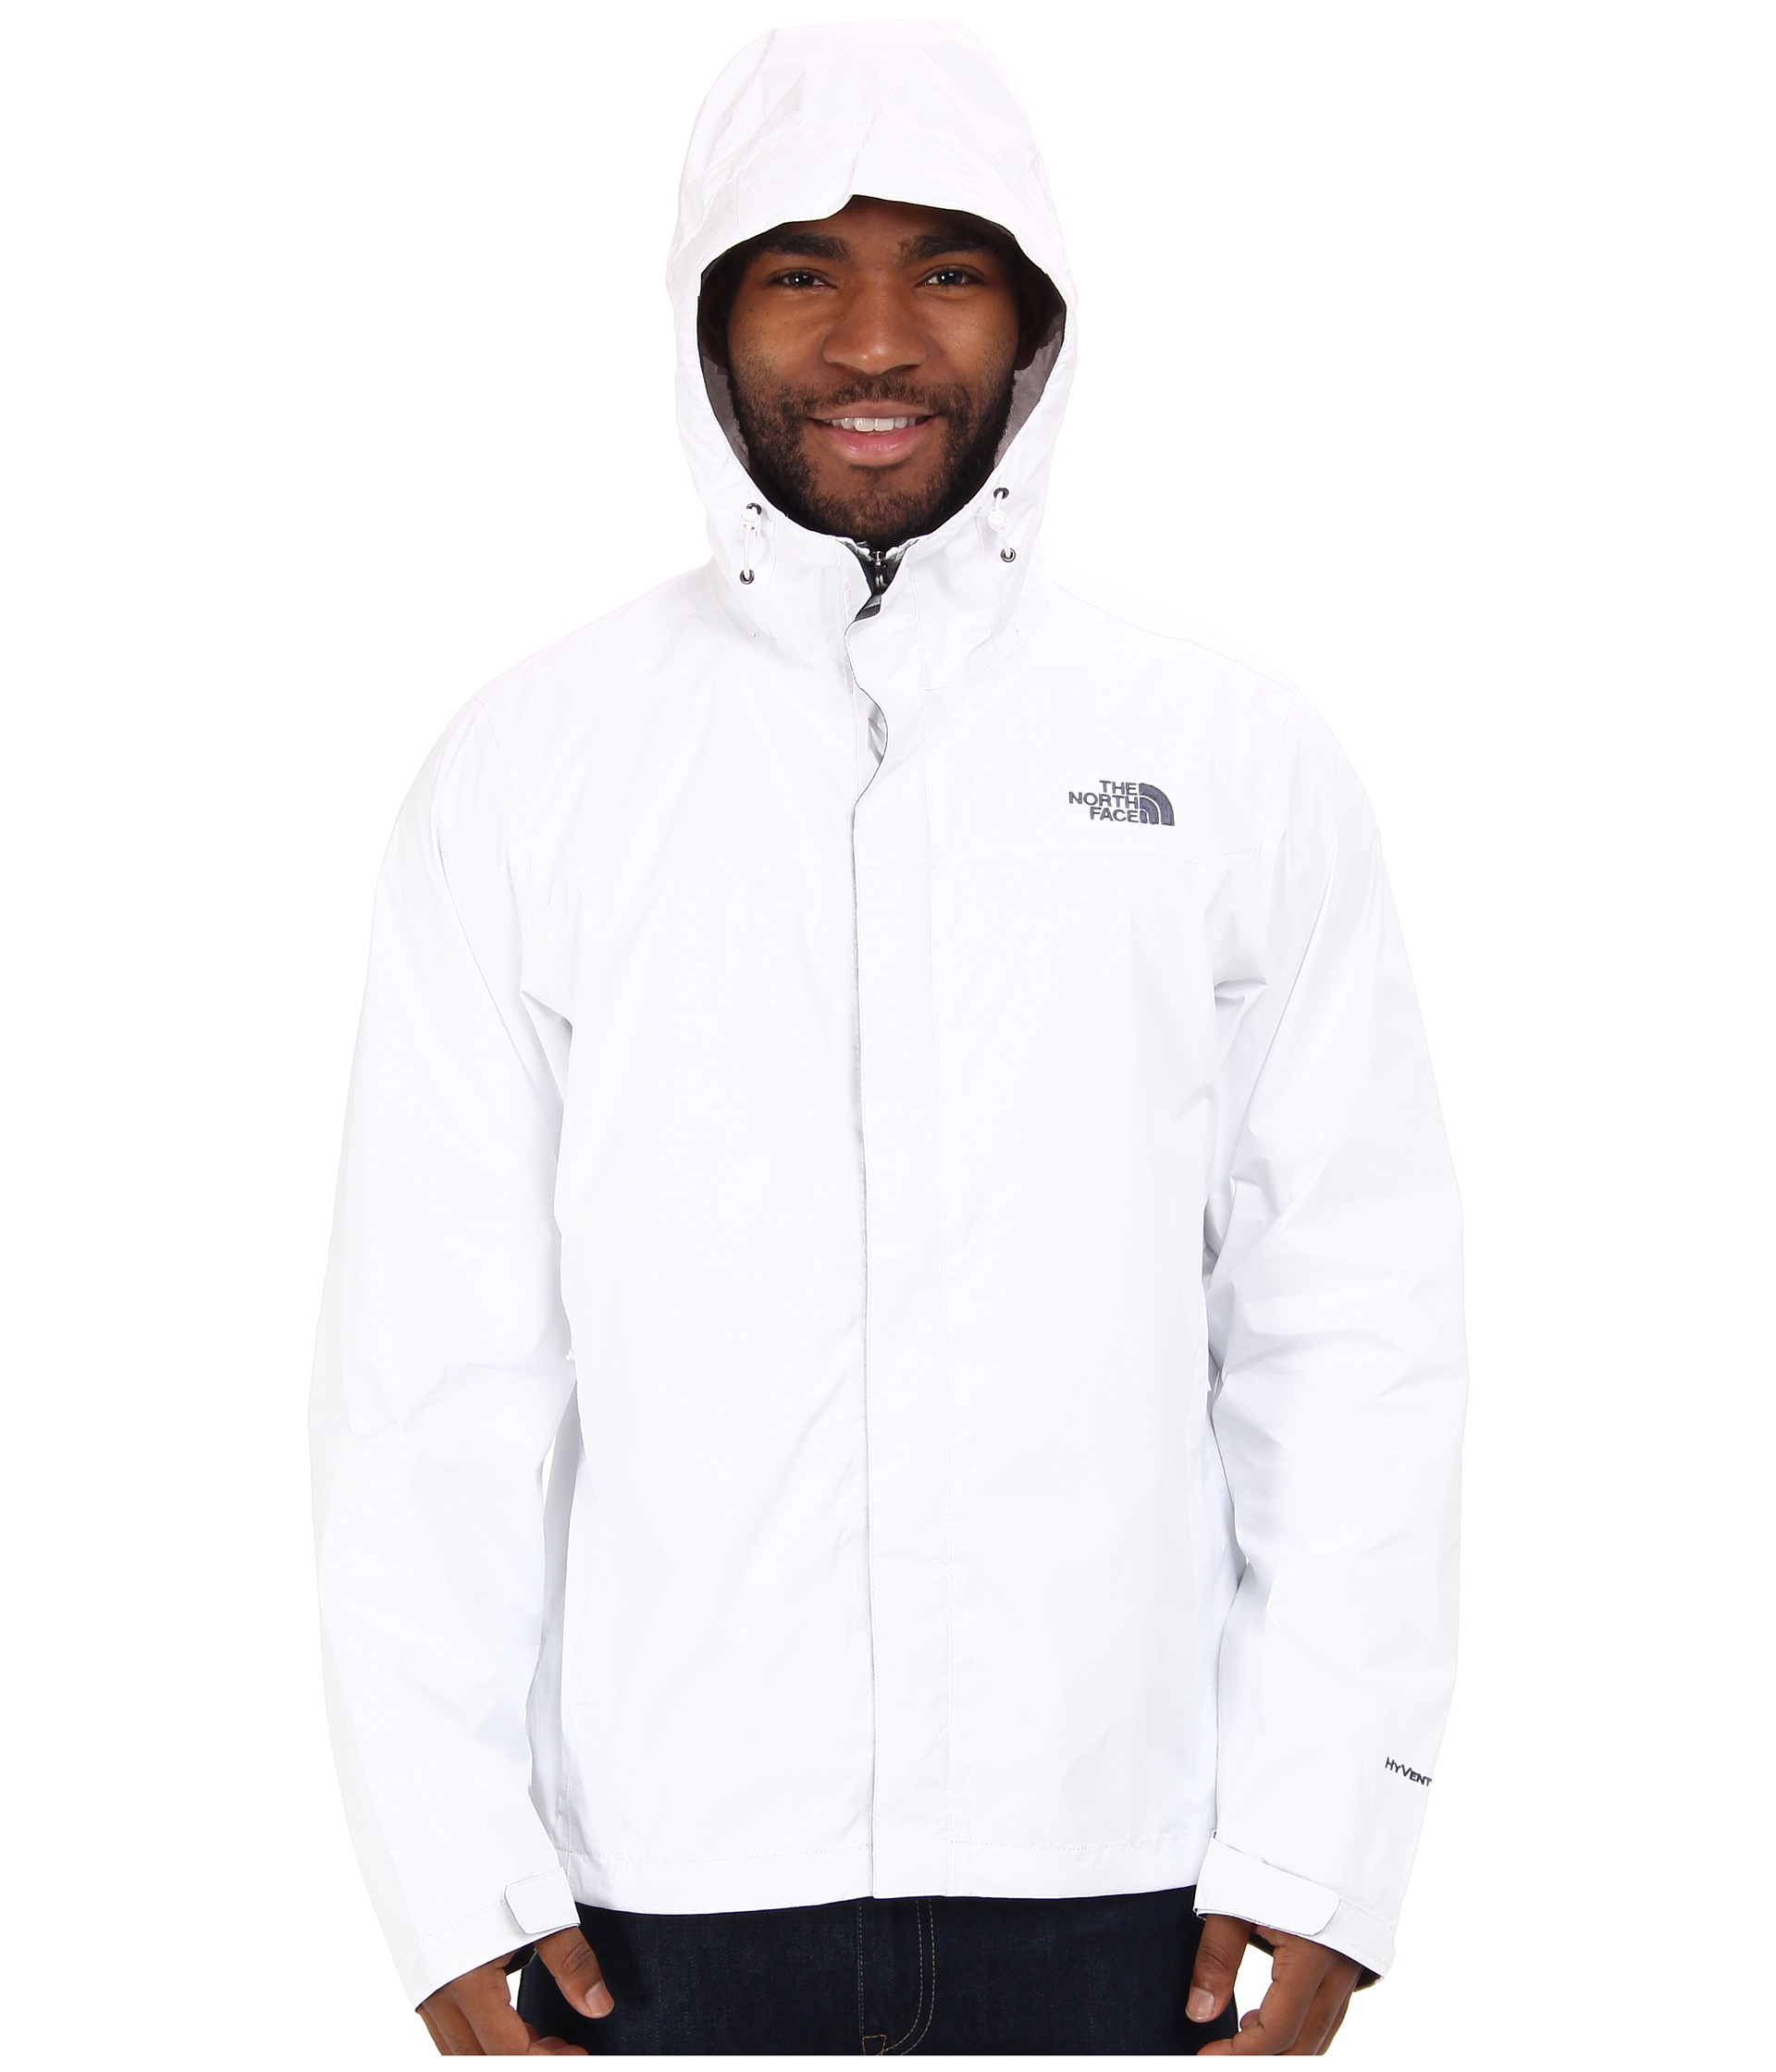 a10b0ec9b The North Face Venture Jacket in White for Men - Lyst